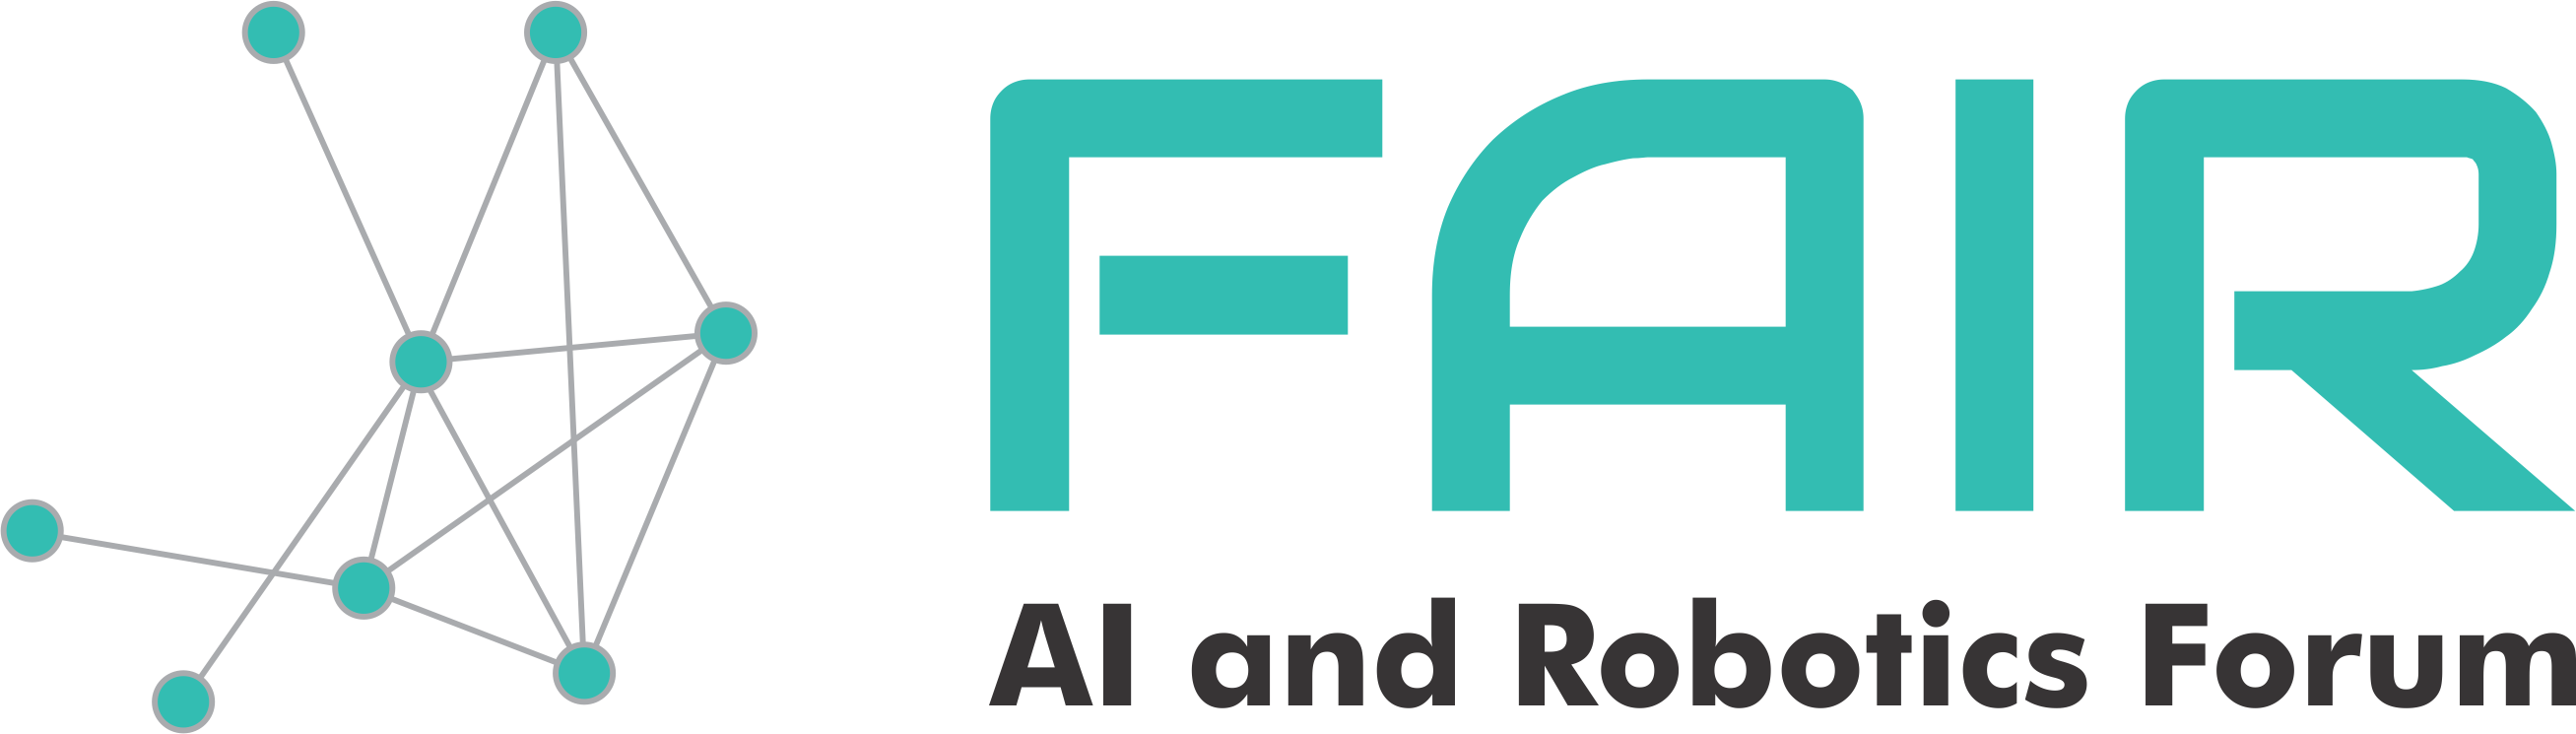 Quantum-Robotics-logo-robots-programming-hardware-pc-FIRST-competition-fll-ftc-robots